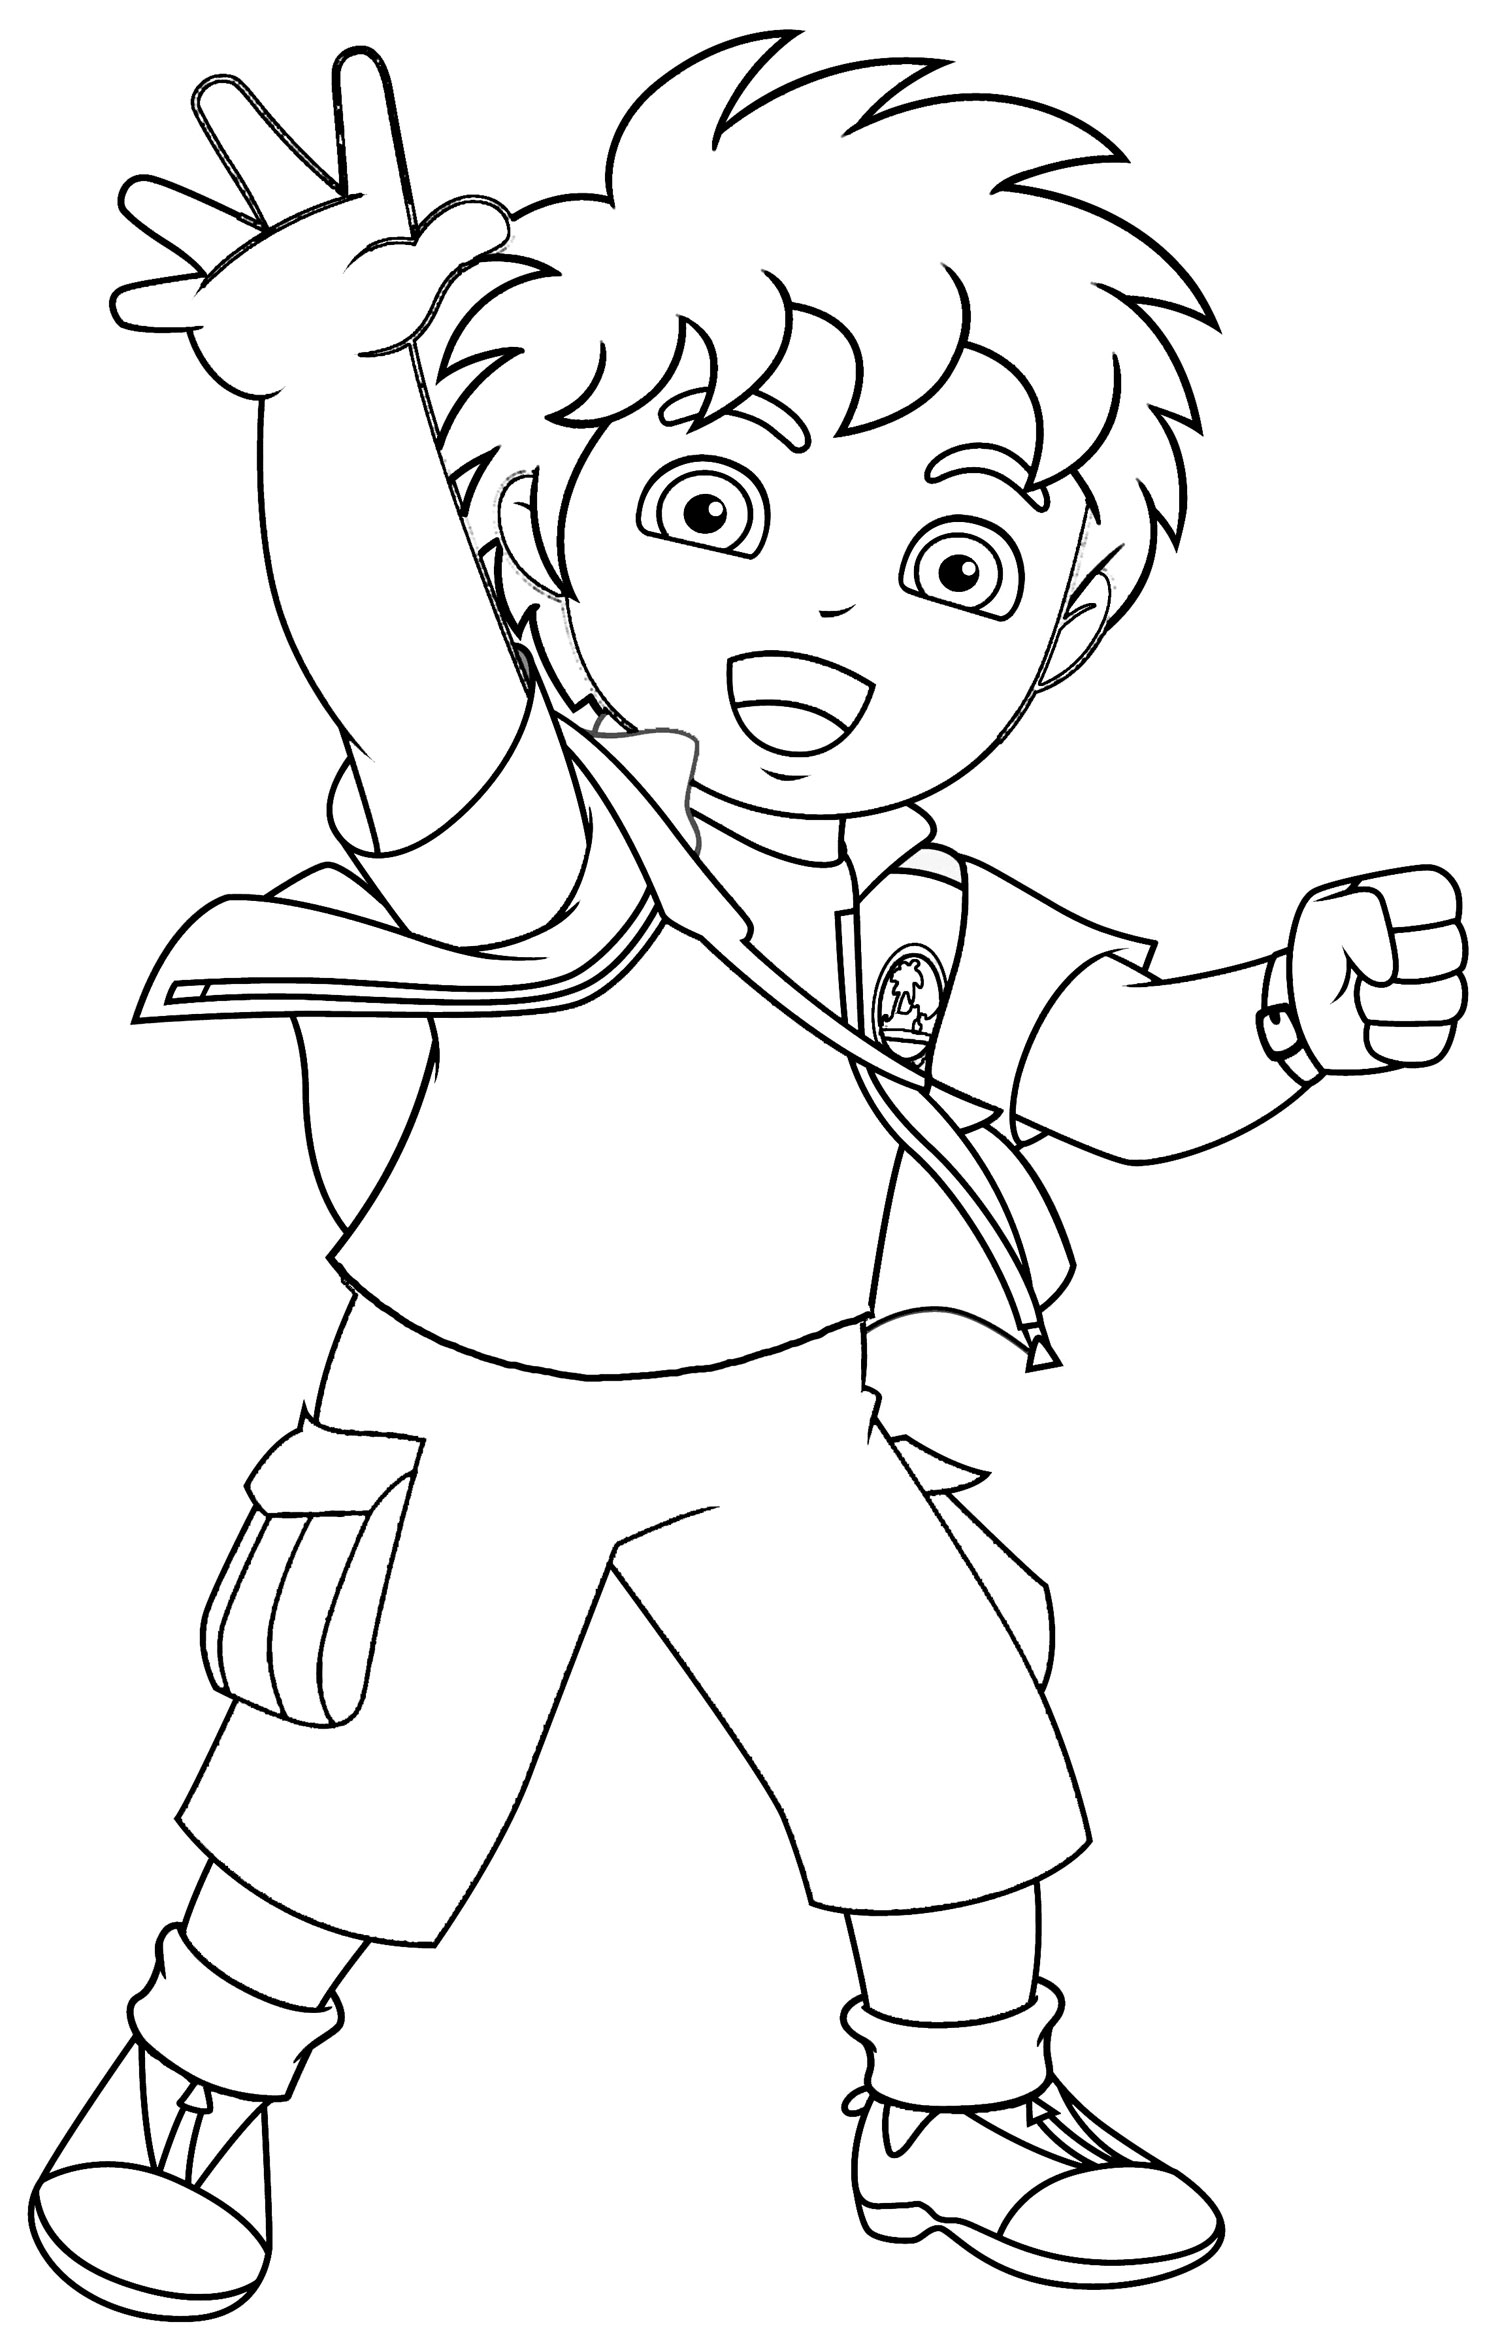 Free Printable Diego Coloring Pages For Kids Free Printable Colouring Pages For Toddlers